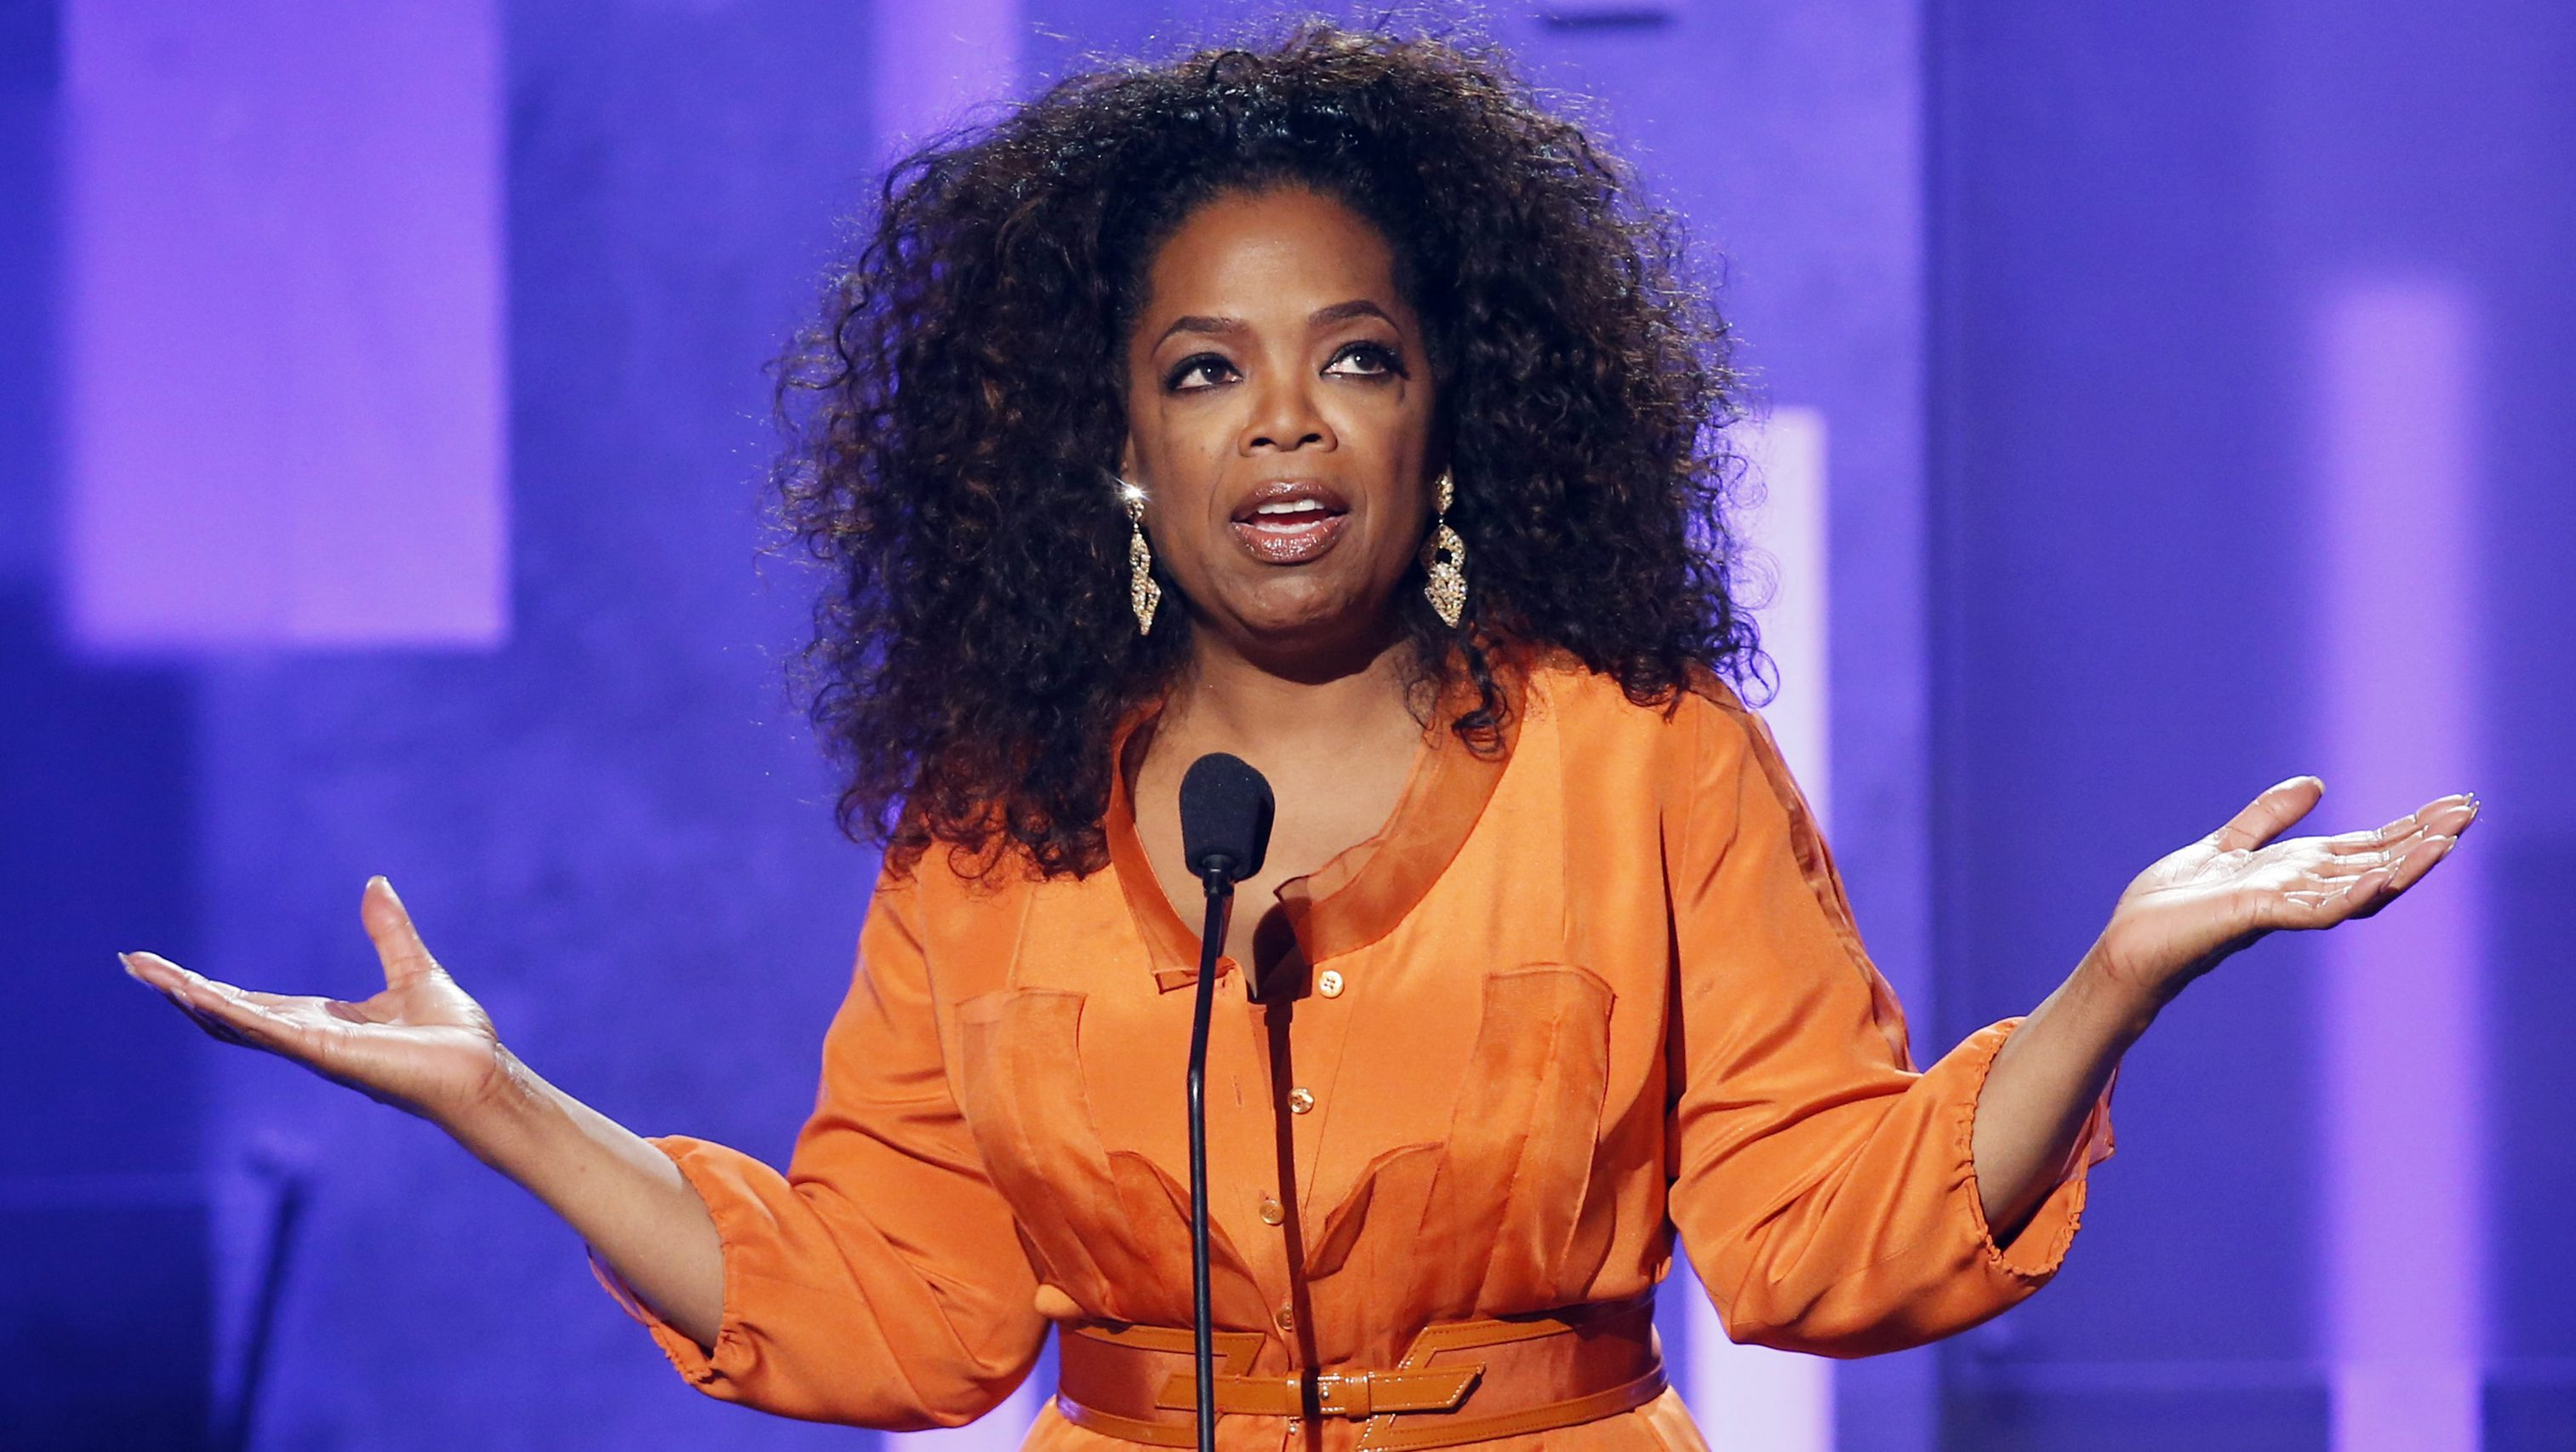 Oprah Winfrey speaks on stage during a tribute to Nelson Mandela